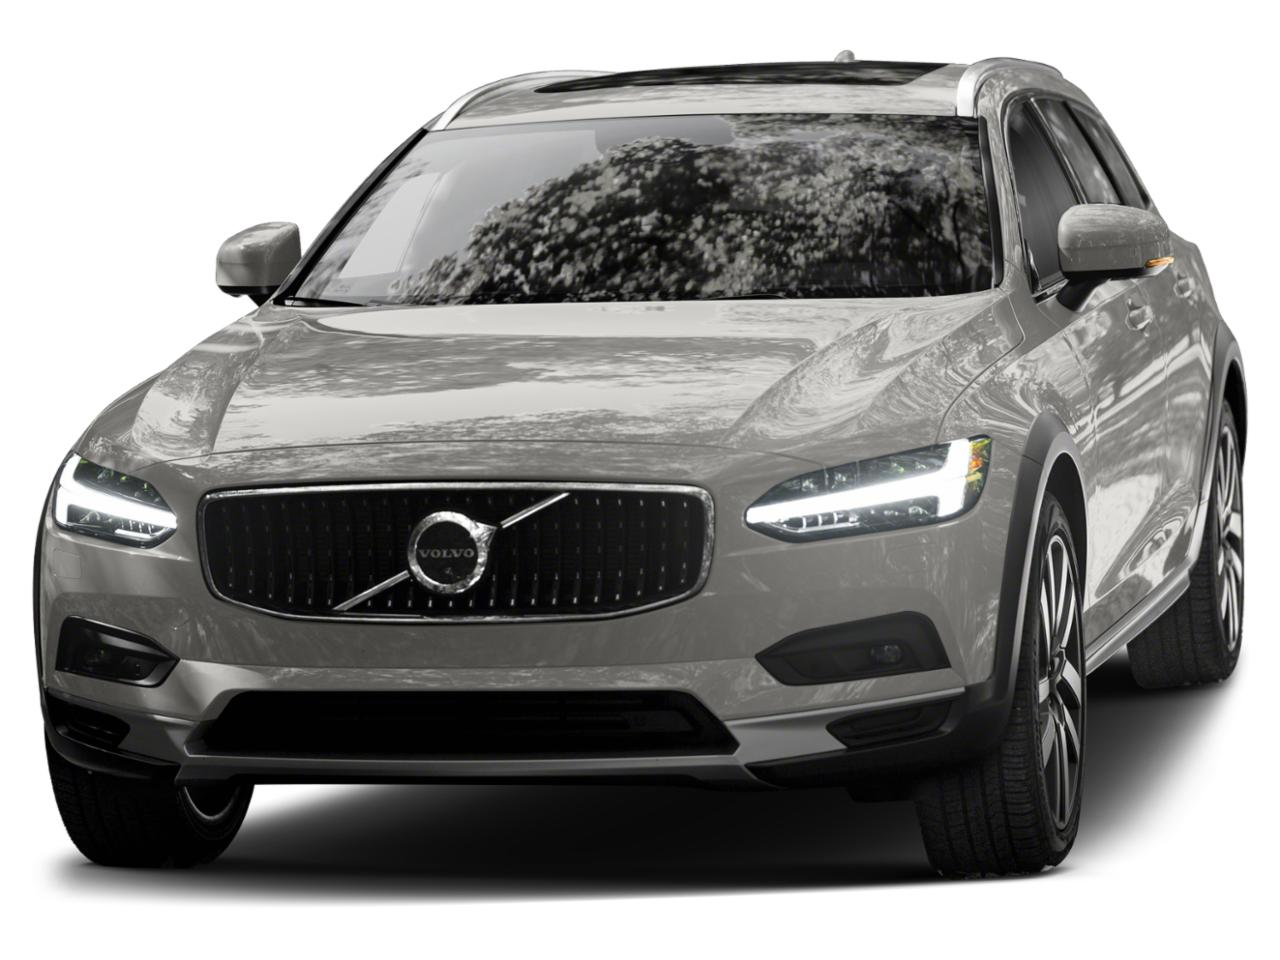 2021 Volvo V90 Cross Country Vehicle Photo in Grapevine, TX 76051